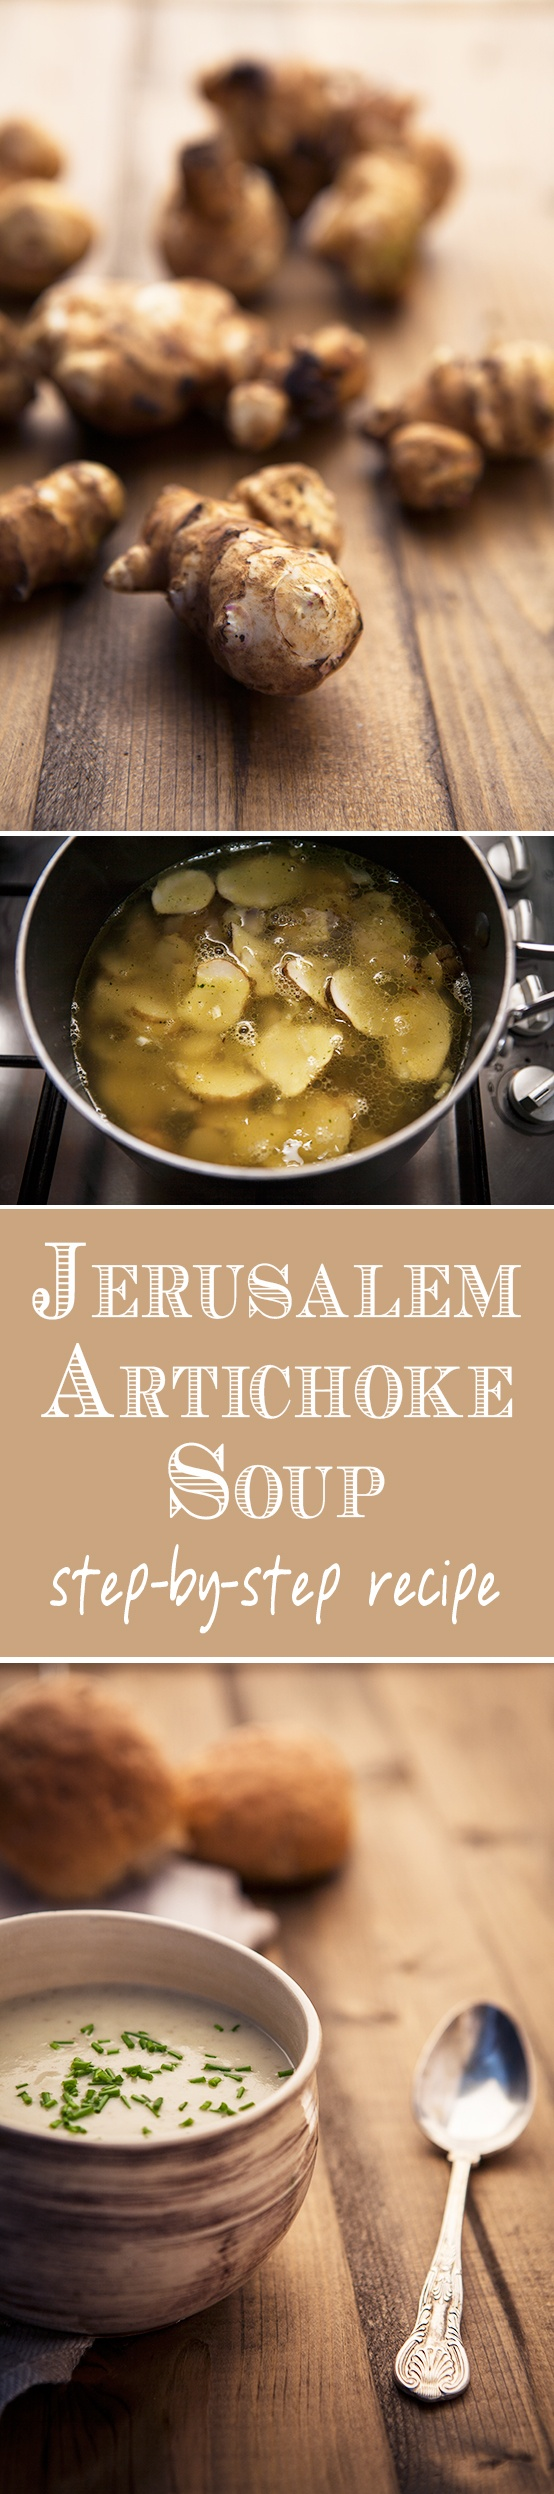 Learn how to cook jerusalem artichoke soup in a few easy steps.  See more at : www.greedygourmet.com